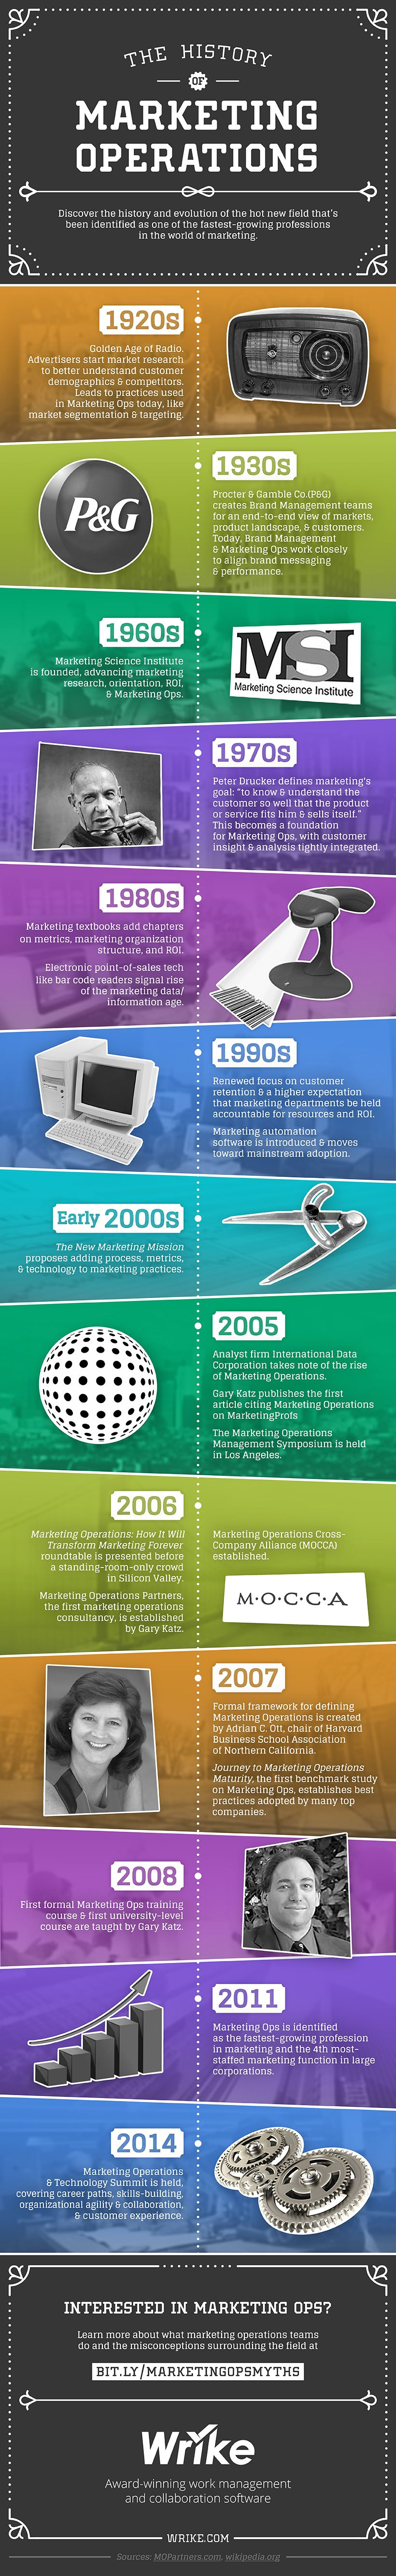 The History of Marketing Operations #infographic